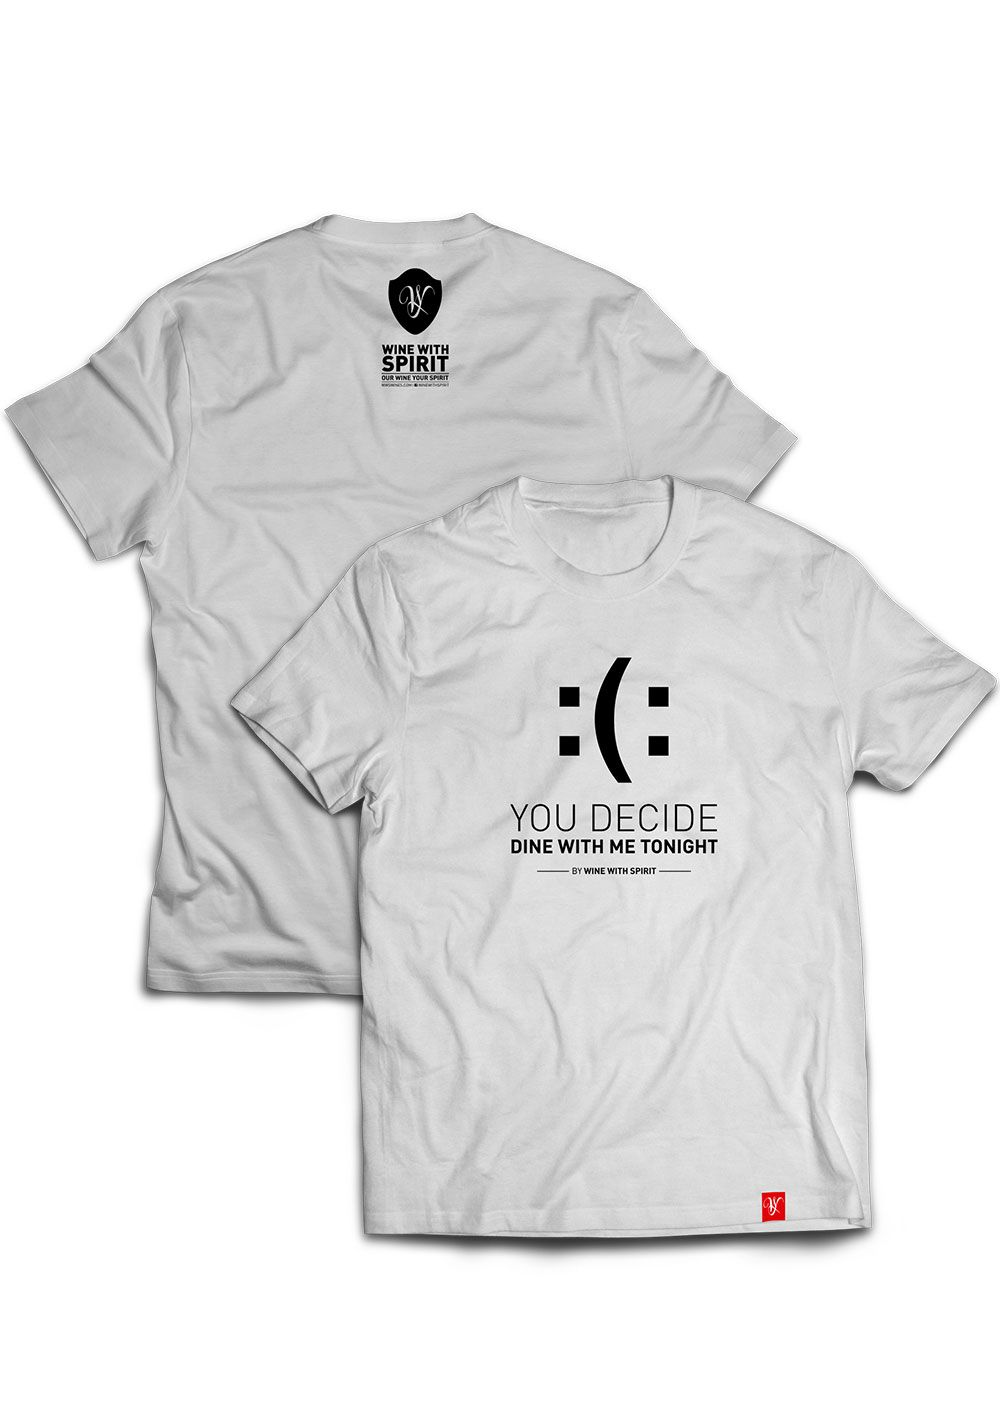 tshirt you decide merchandise enotainment wine with spirit